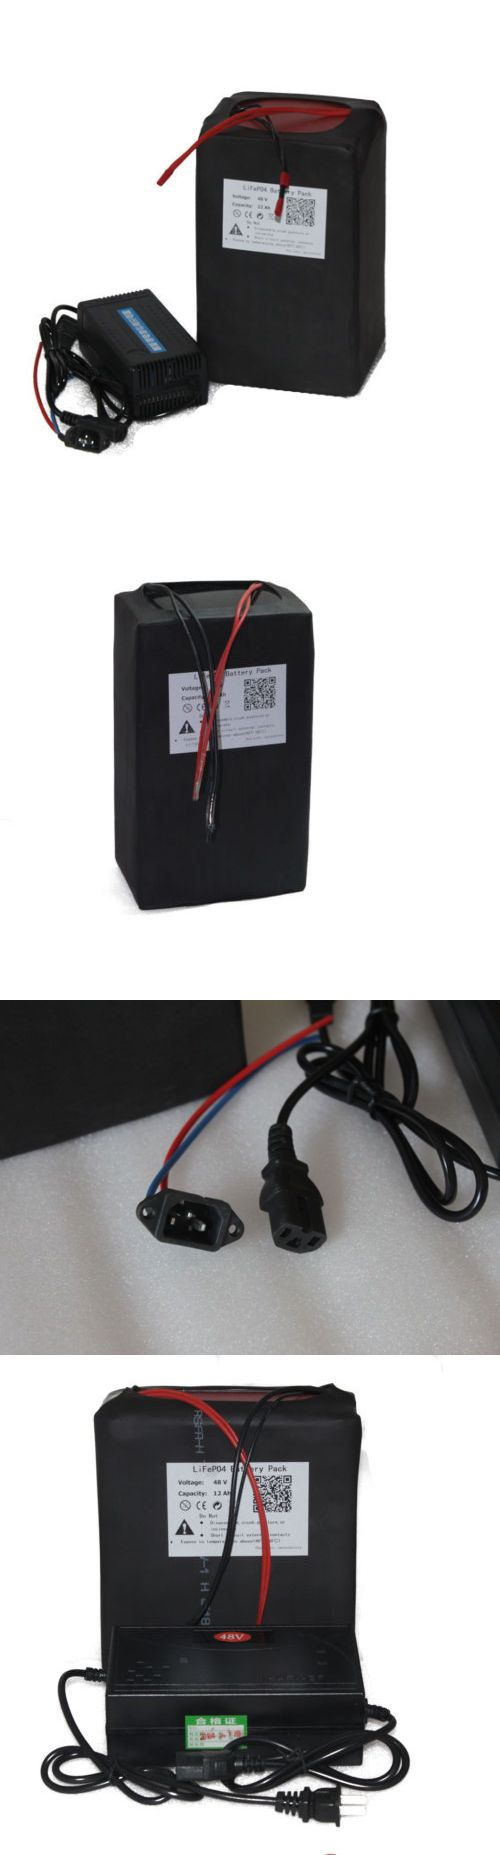 Electric Bicycle Components 177814: 48V 12Ah Lifepo4 Battery 3A Charger Bms Rechargeable Power 500W Ebike Kit Motor BUY IT NOW ONLY: $360.0